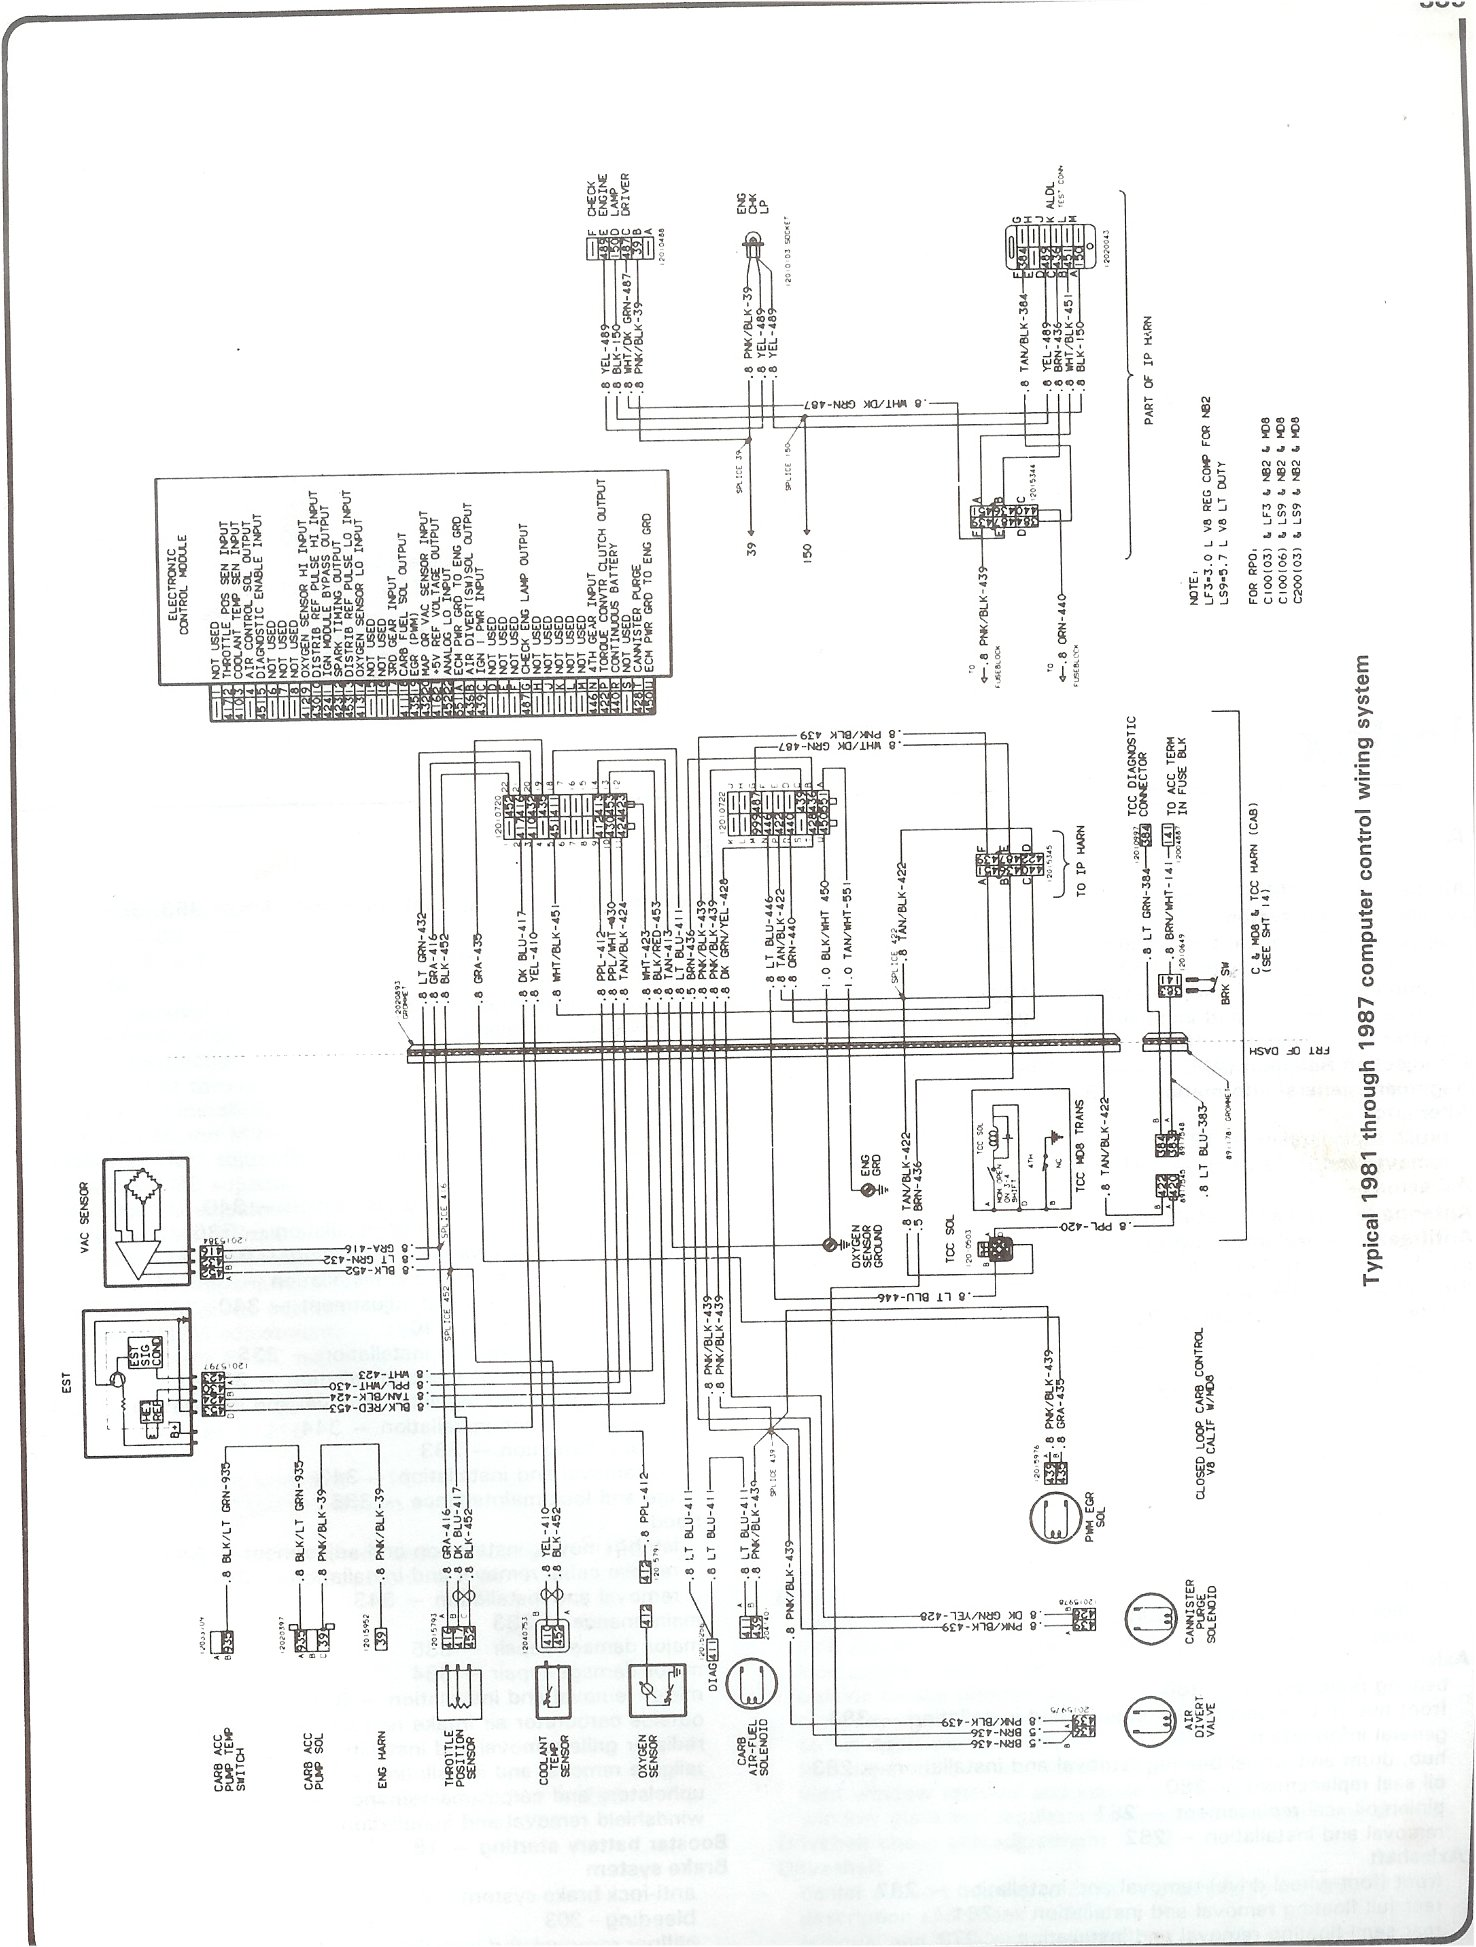 WRG-6760] 73 Blazer Fuel Gauge Wiring Diagram